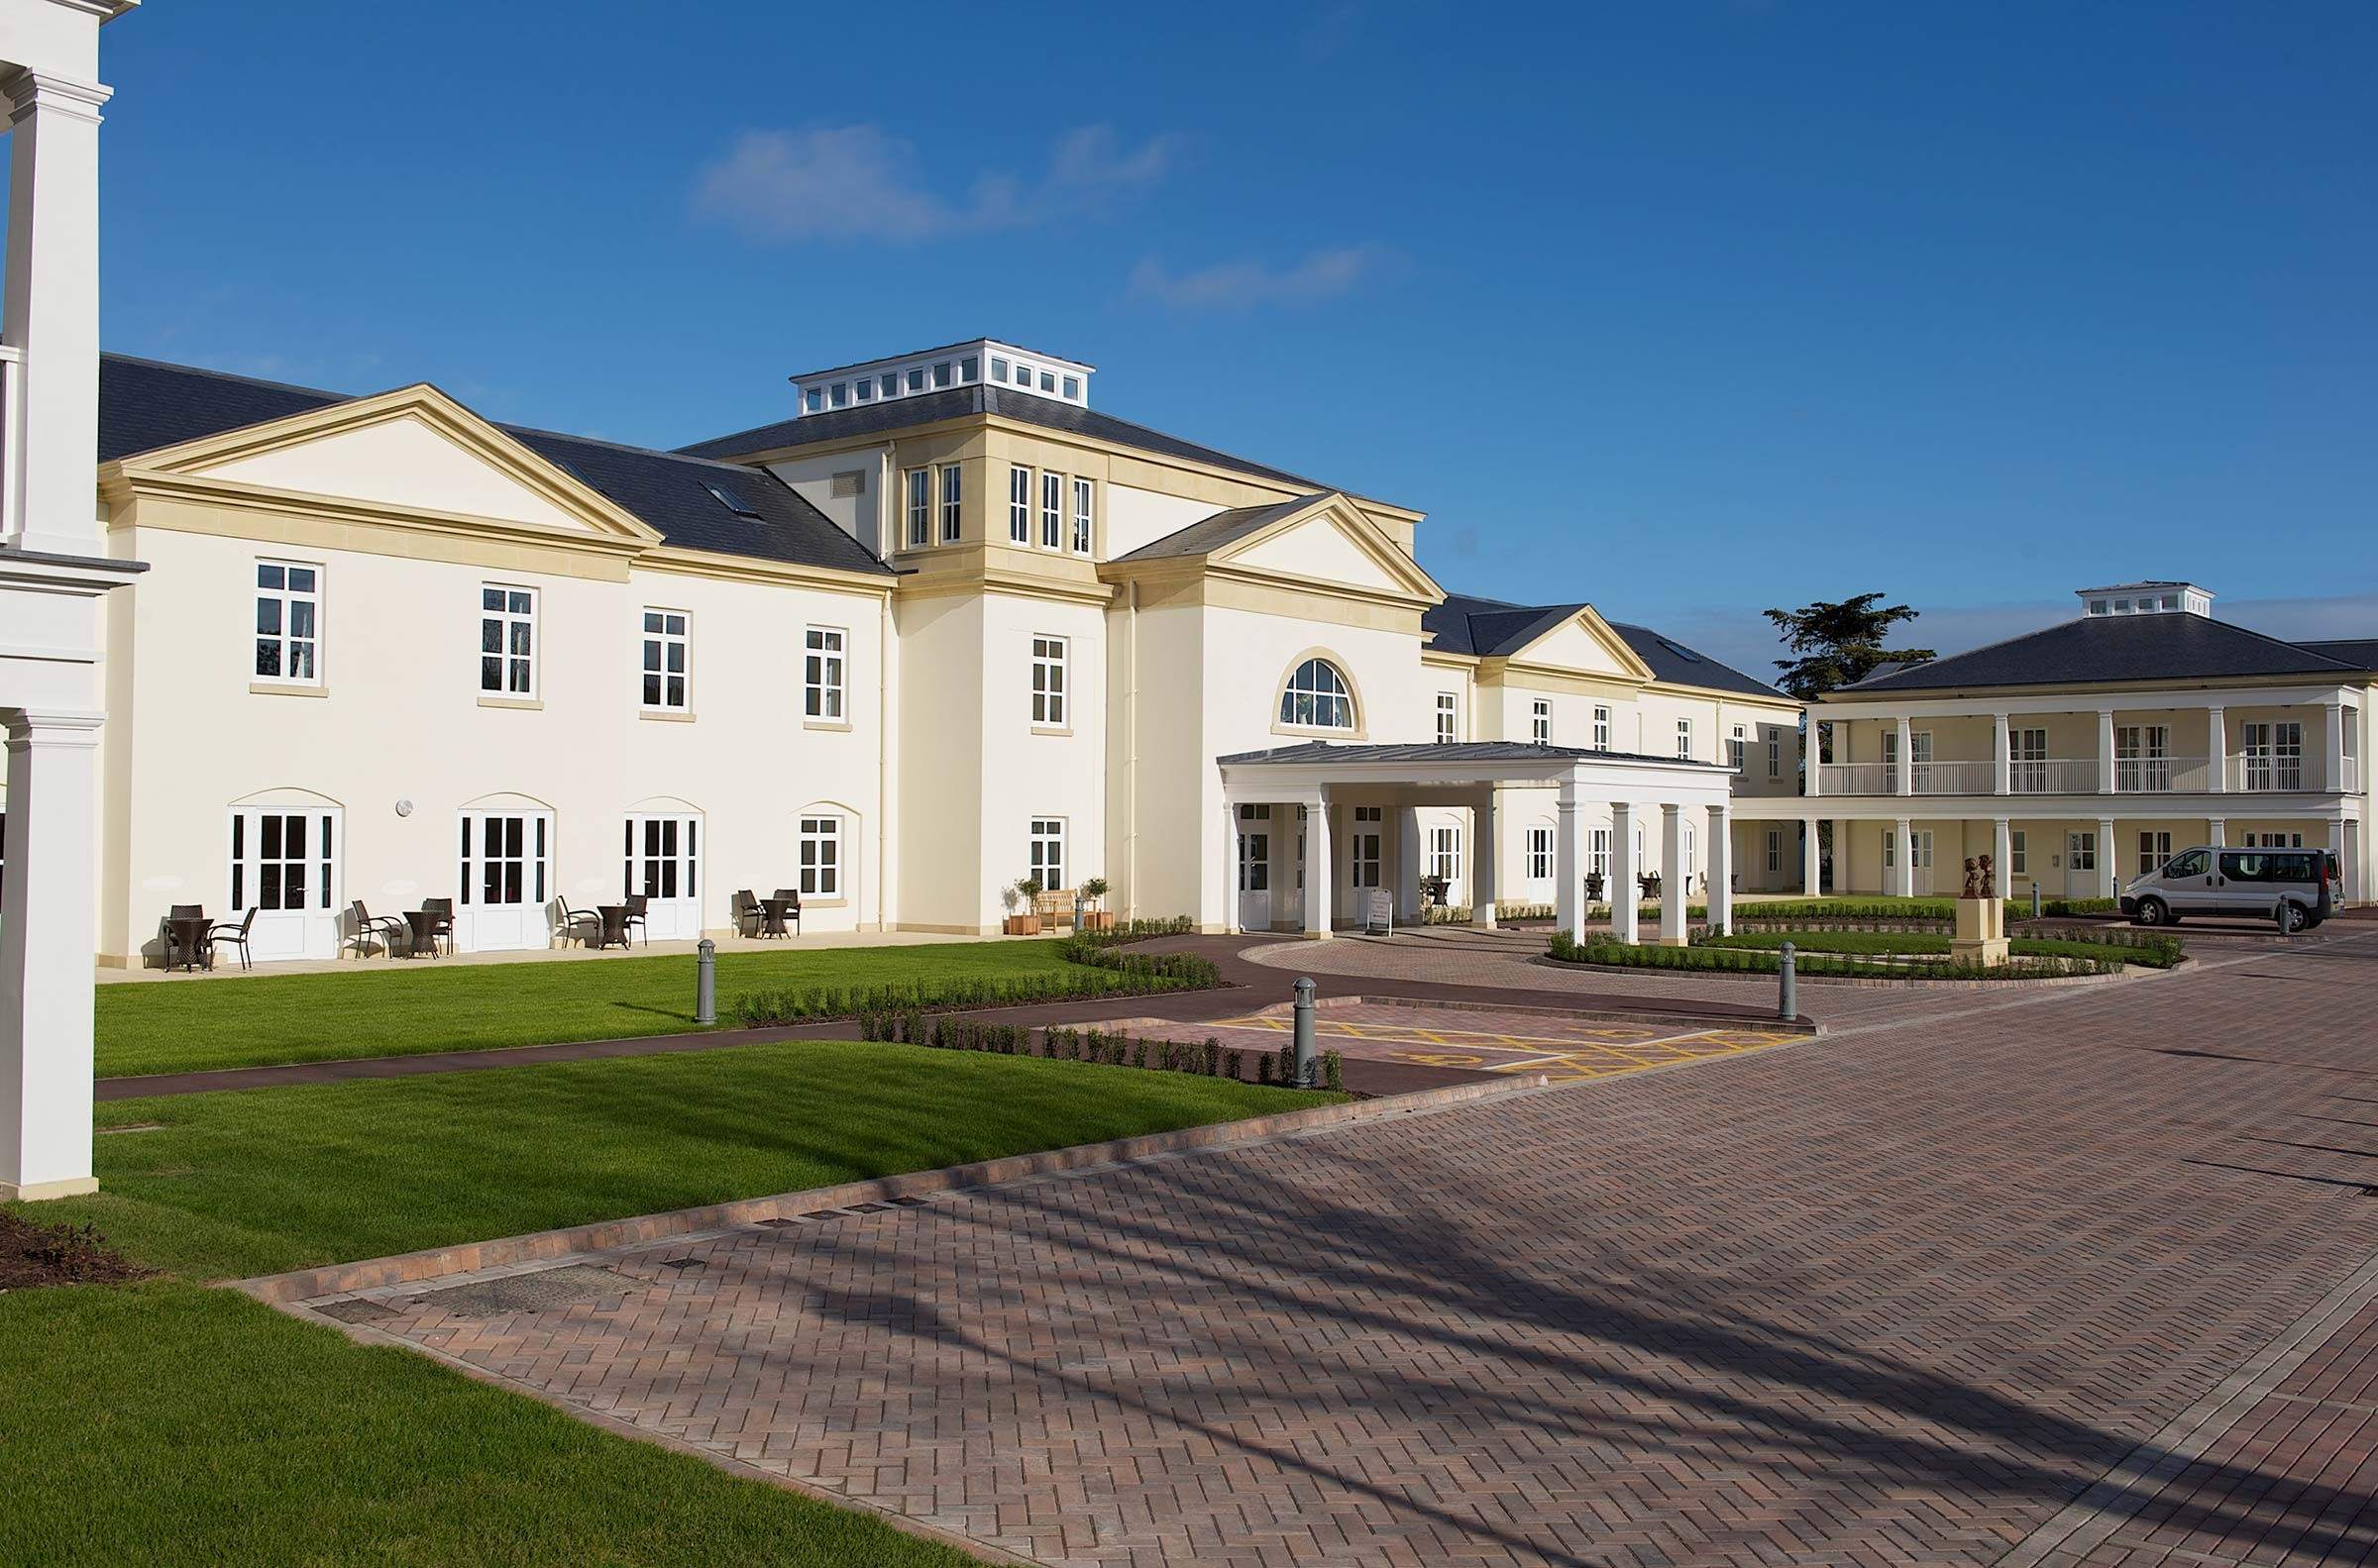 Lakeside Care Home, Jersey